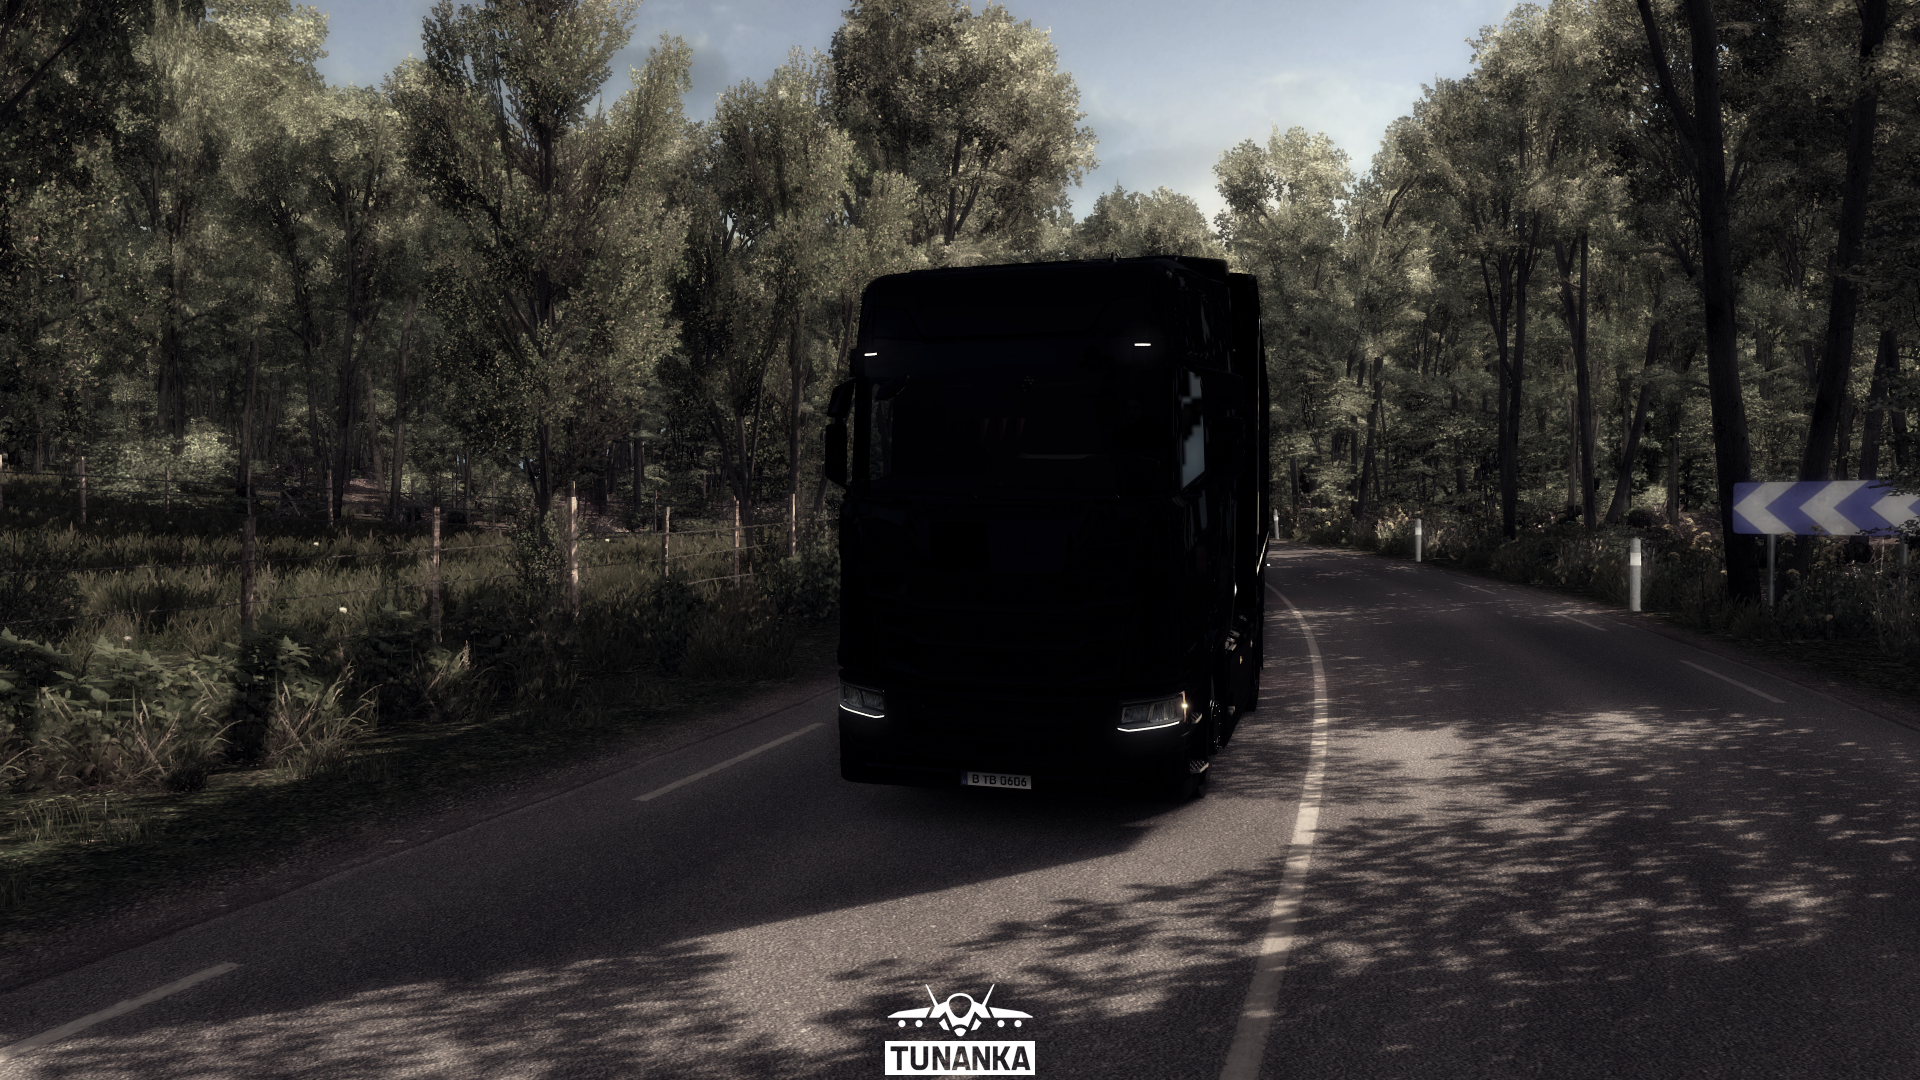 ets2_20180806_171205_00.png